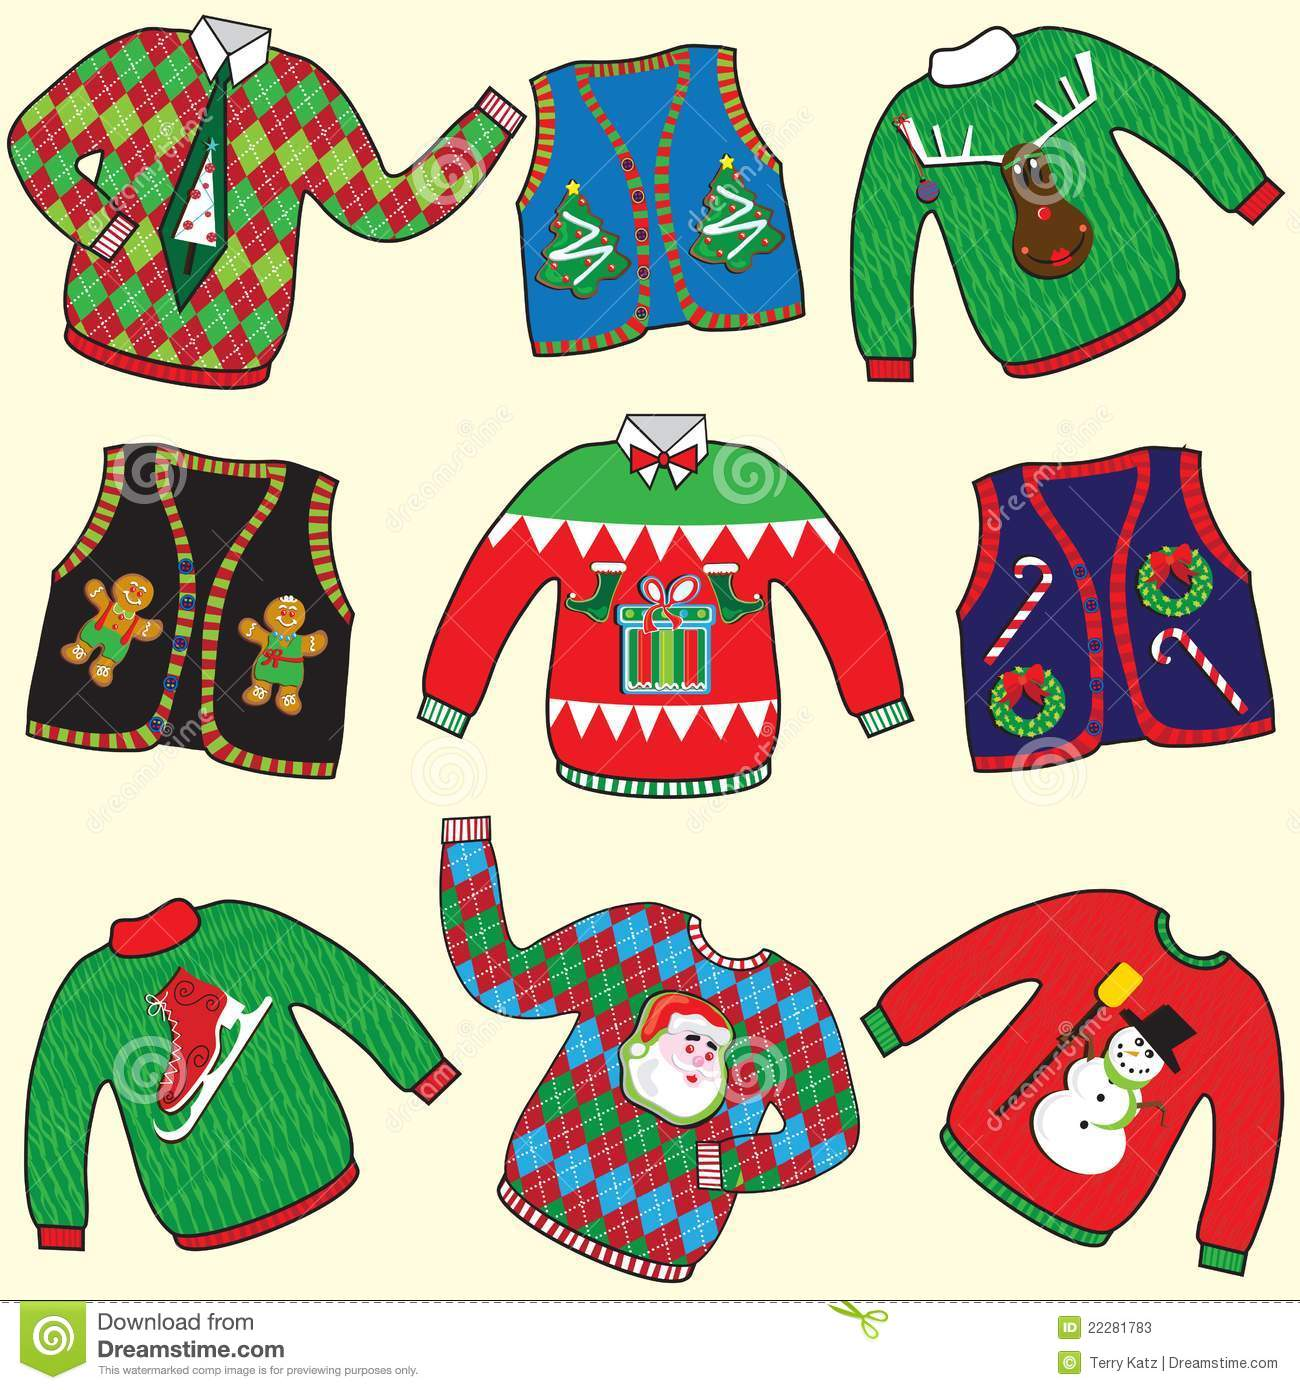 Christmas jumper clipart clip freeuse stock Christmas jumper clipart 3 » Clipart Station clip freeuse stock